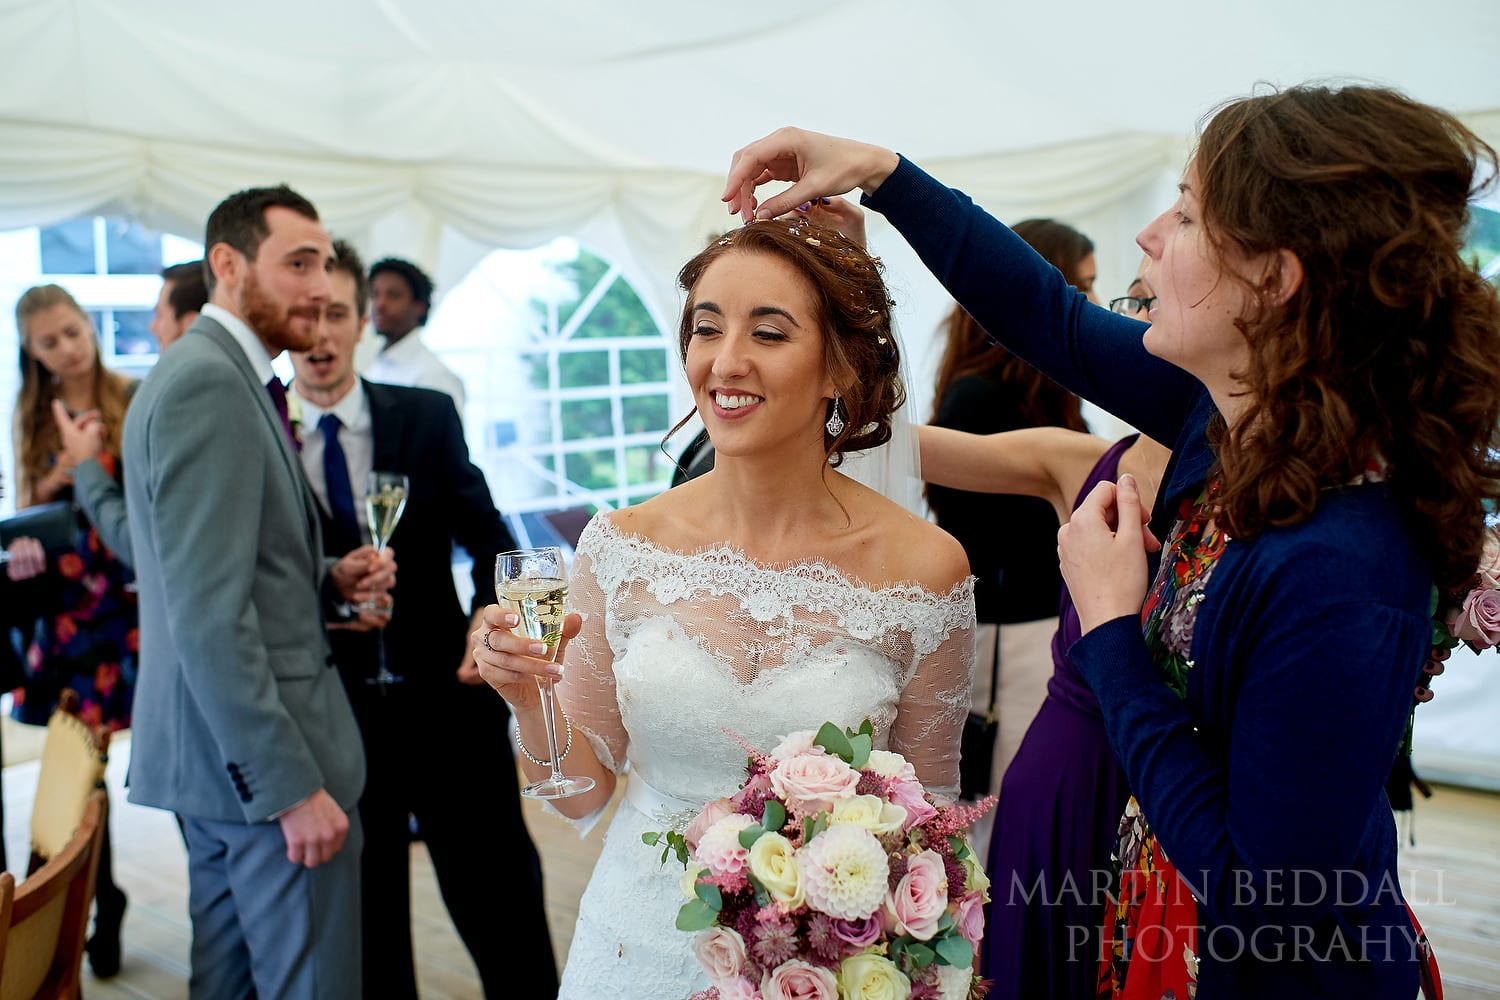 Picking confetti out of the bride's hair